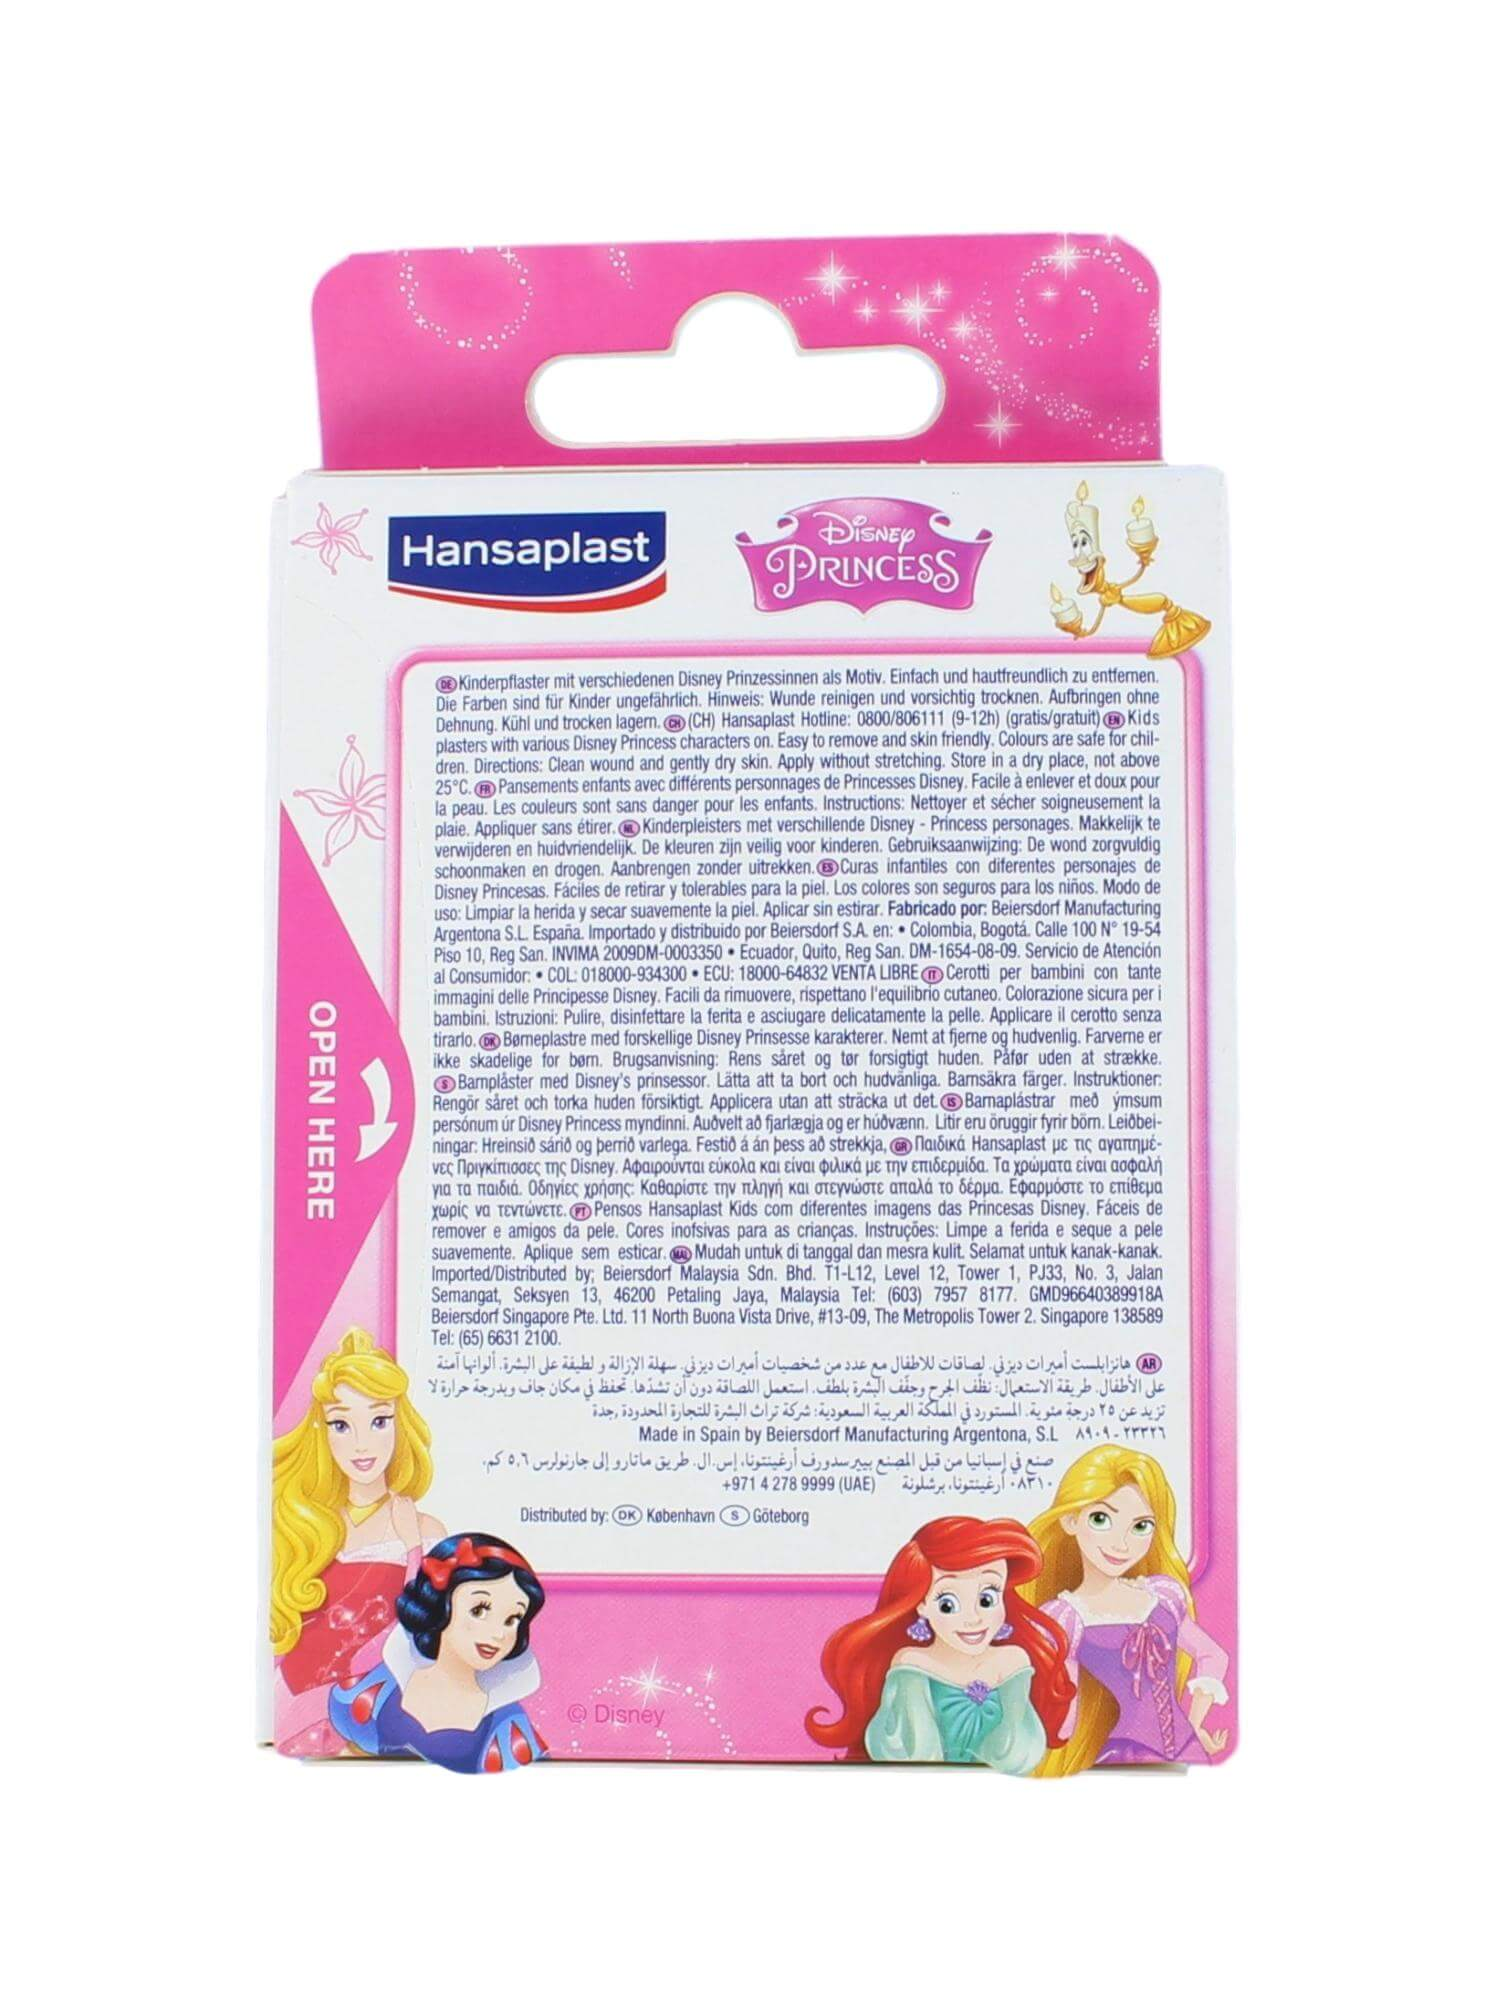 Hansaplast Pleisters Kids Princess, 20 Strips